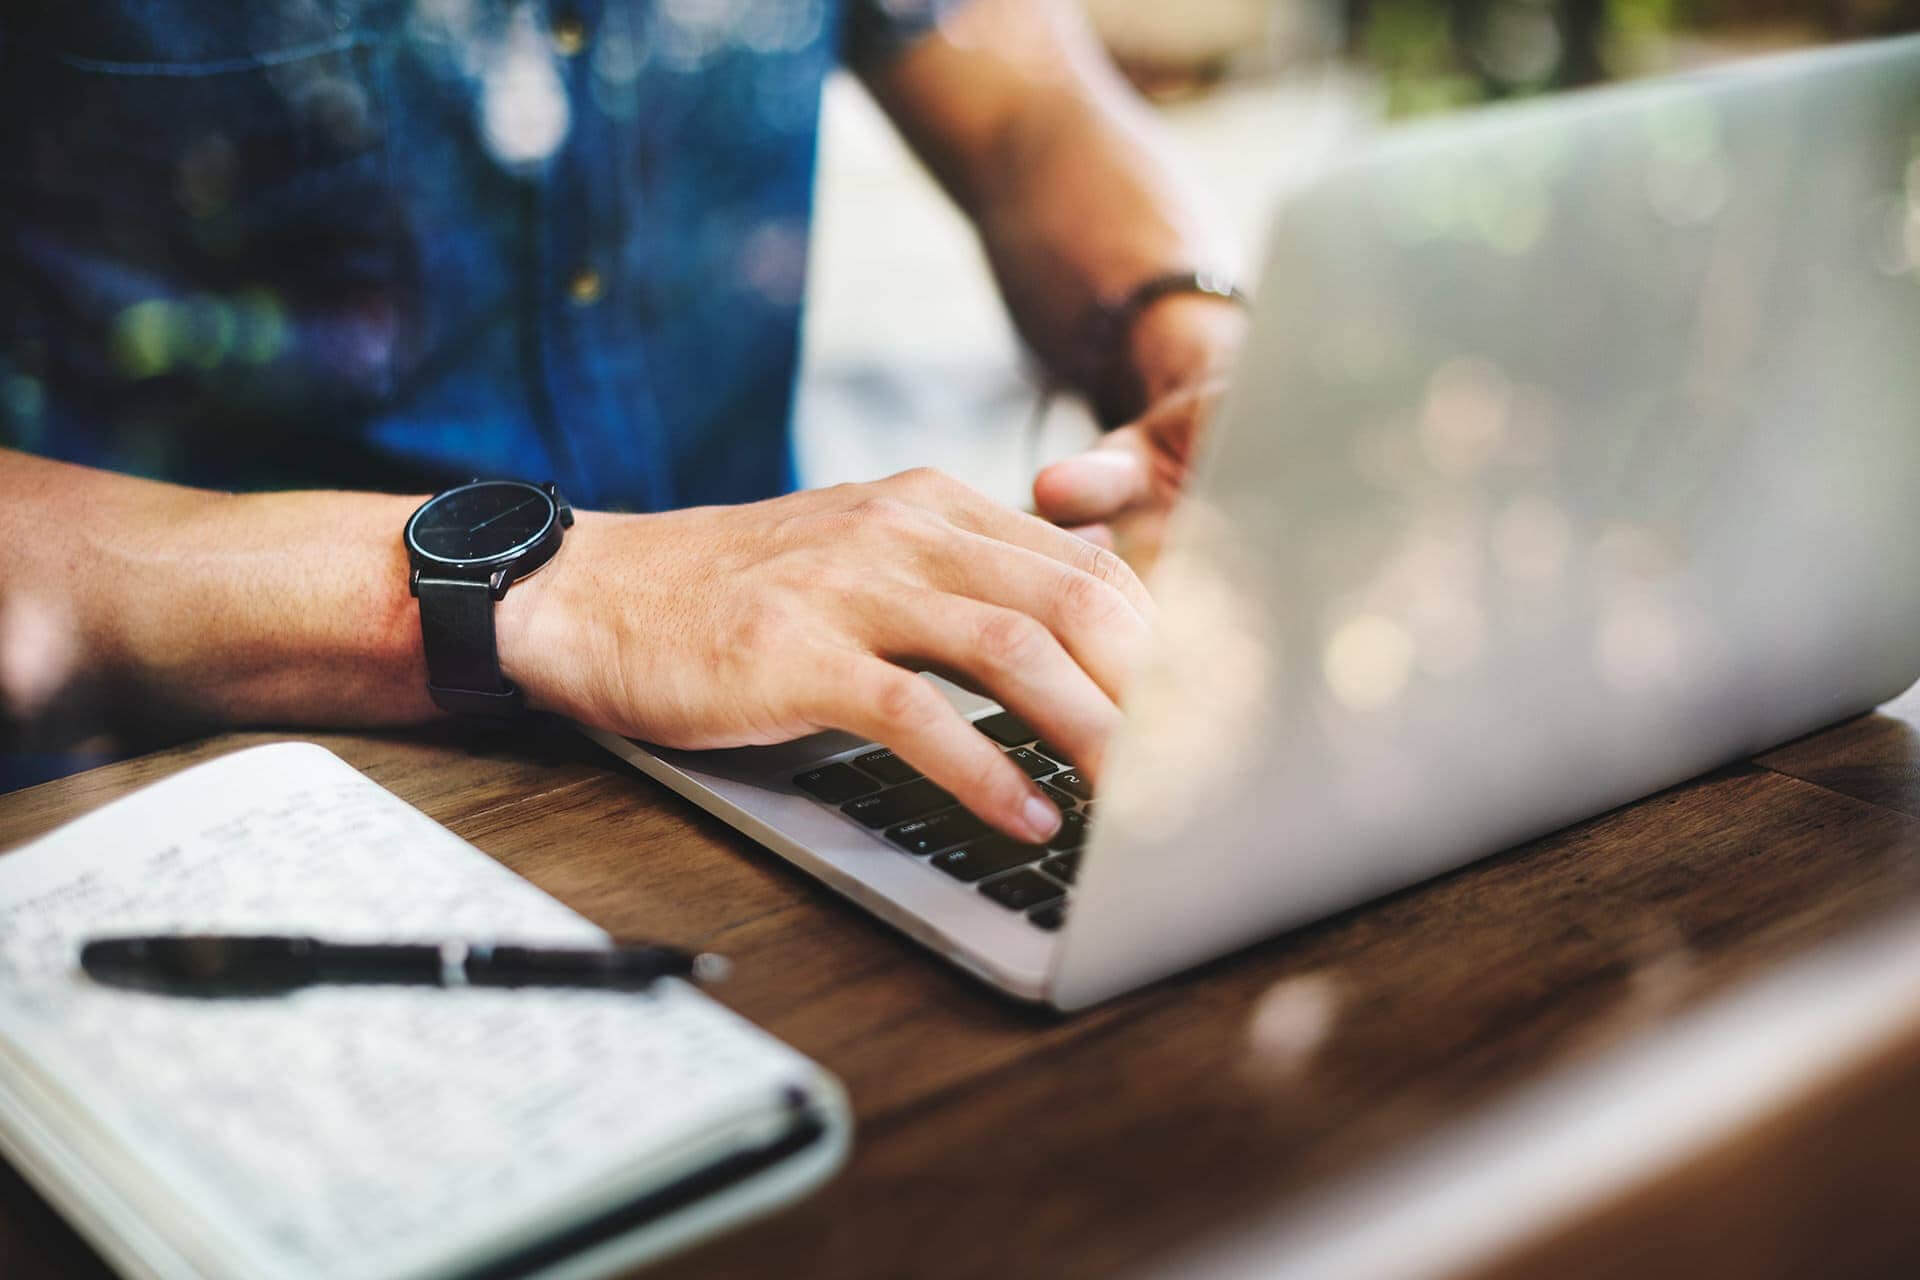 10 Digital Skills You Need to Master to Become an Entrepreneur